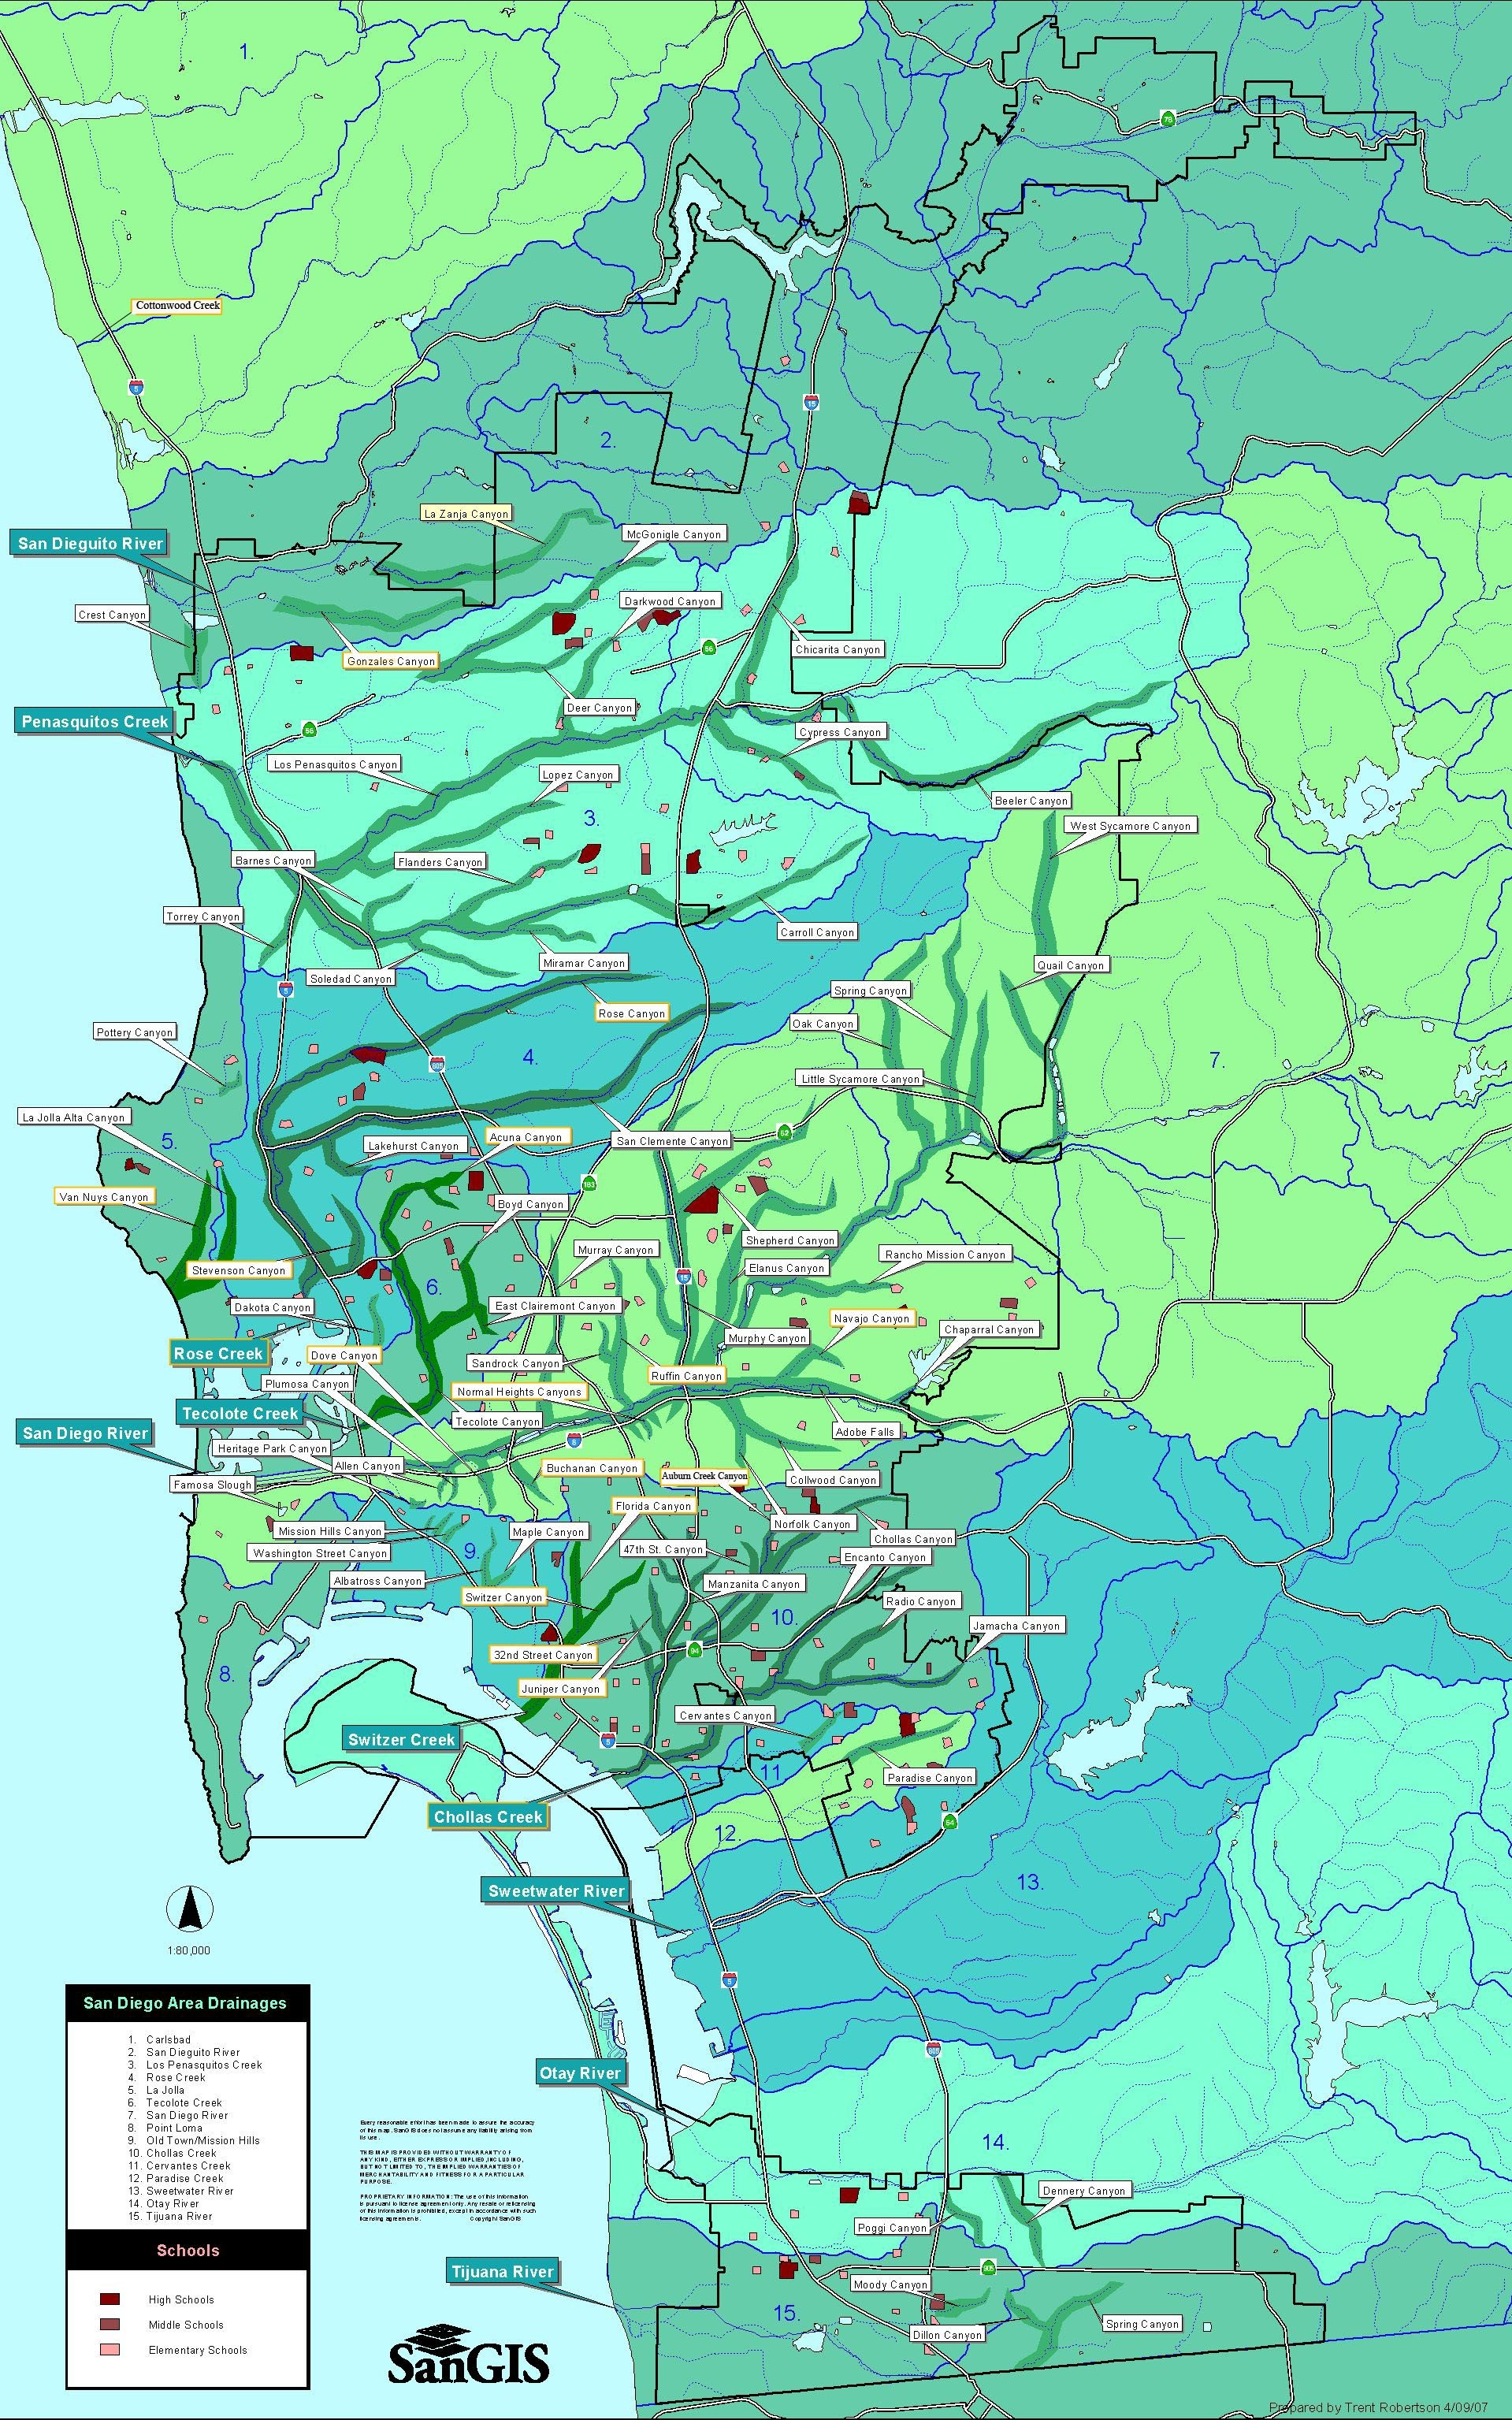 San Diego watersheds and canyons.jpg